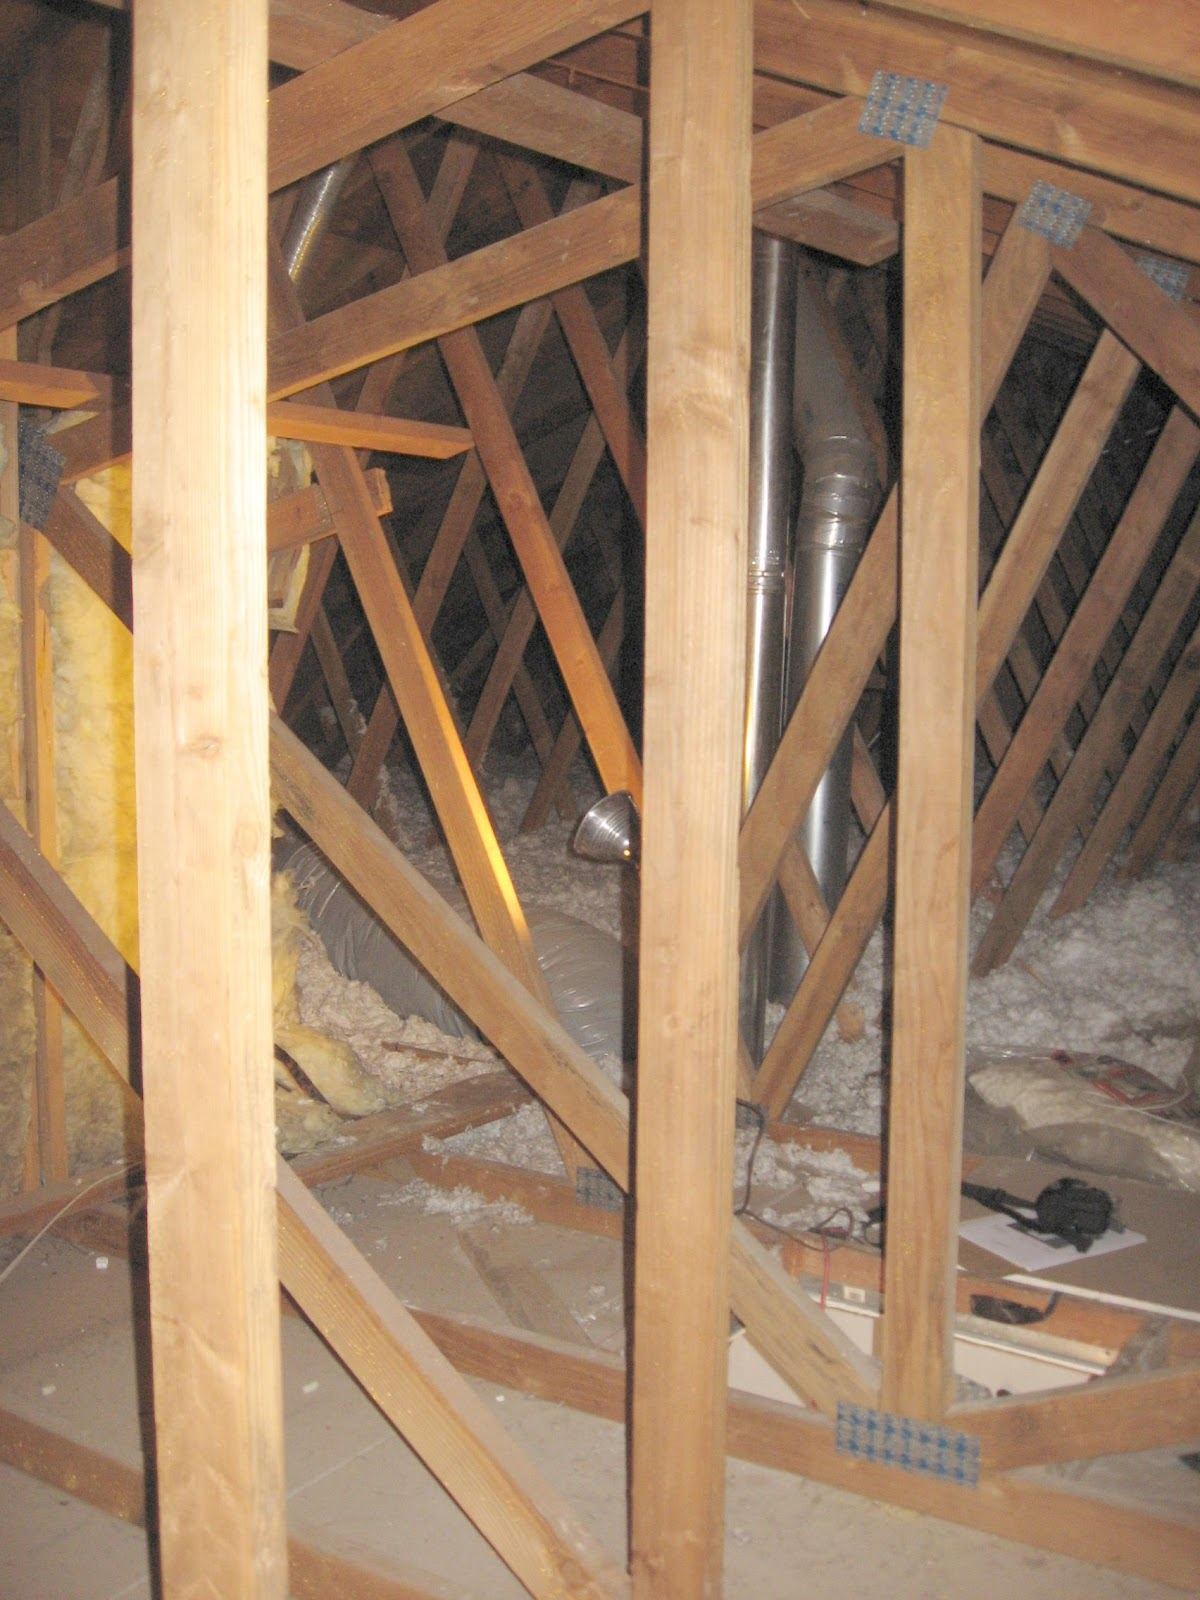 average attic floor insulation was r10 that commonly found in distressed loosefill that was intended r19 the very large attic was a useless and dangerous